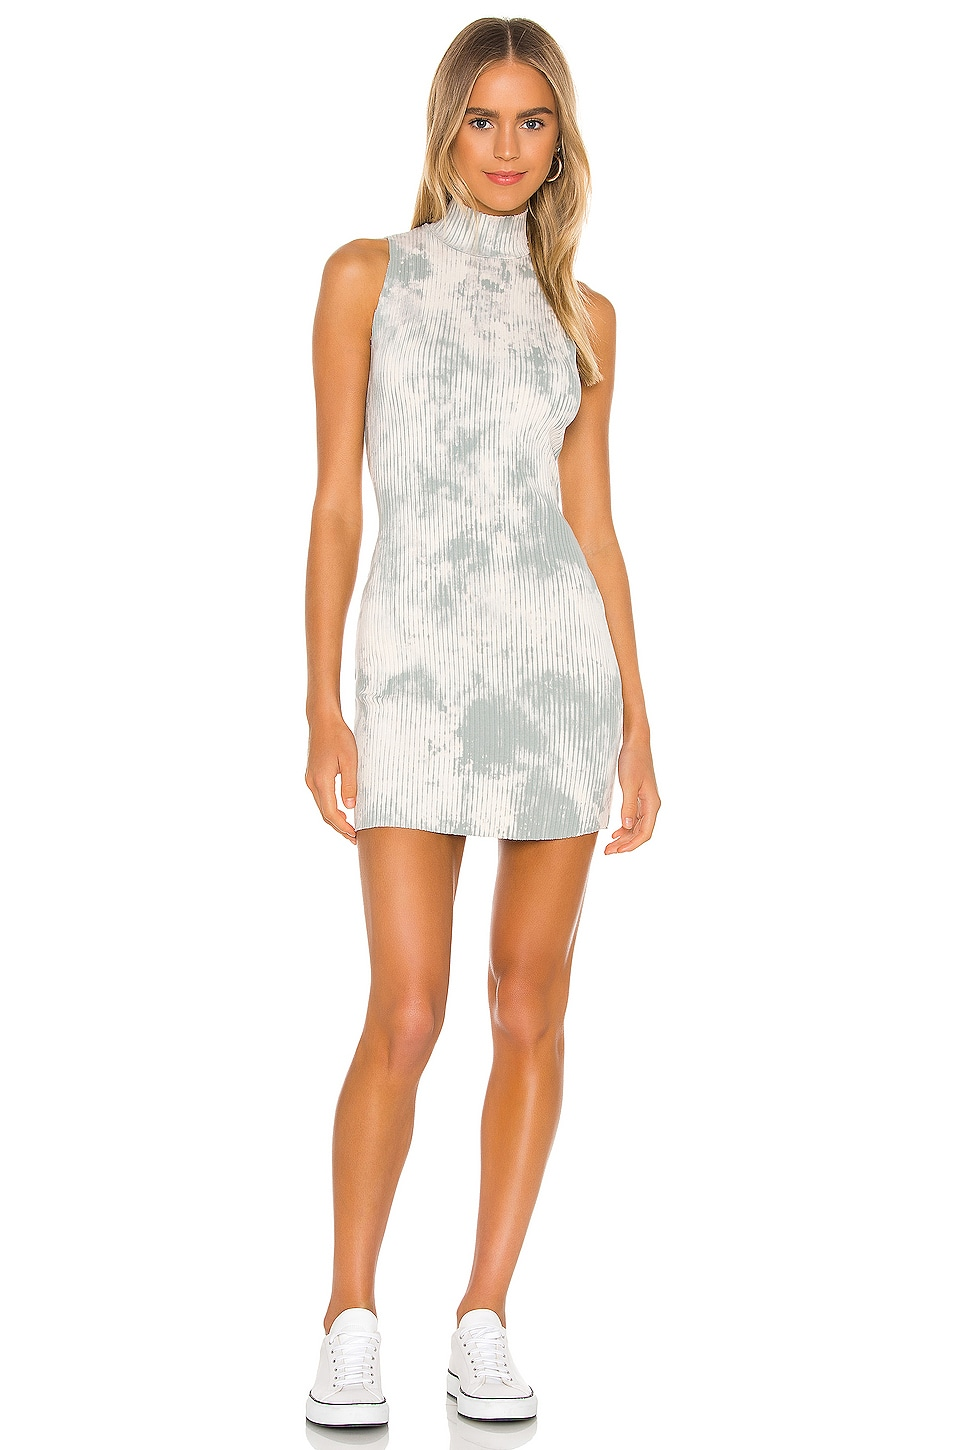 x REVOLVE Ibiza Racerback Dress XO             COTTON CITIZEN                                                                                                       CA$ 224.67 13